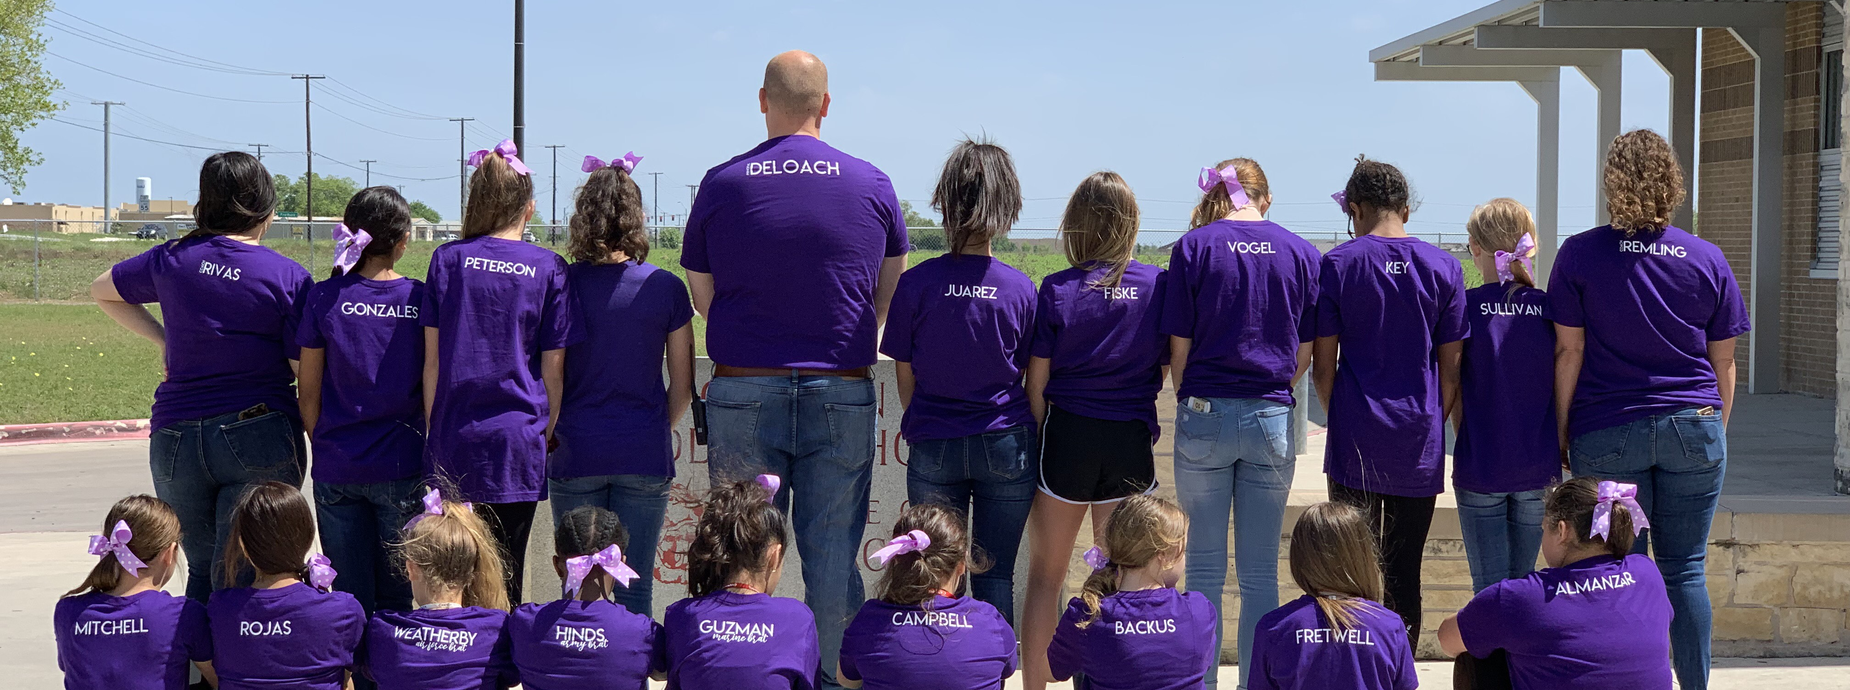 A group of people in purple facing away from the camera